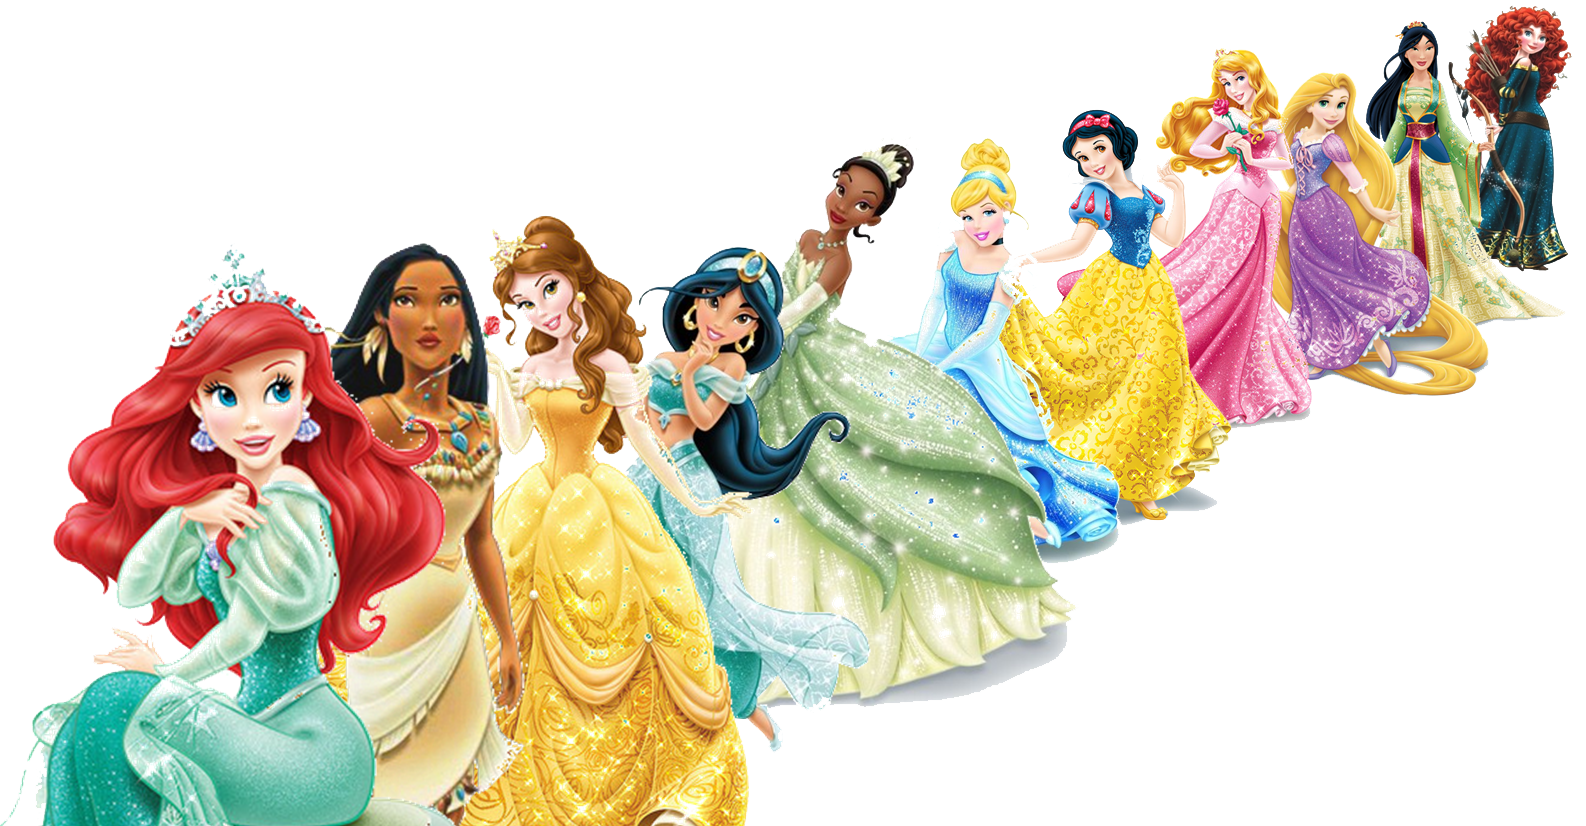 PNG Disney Characters - 144696